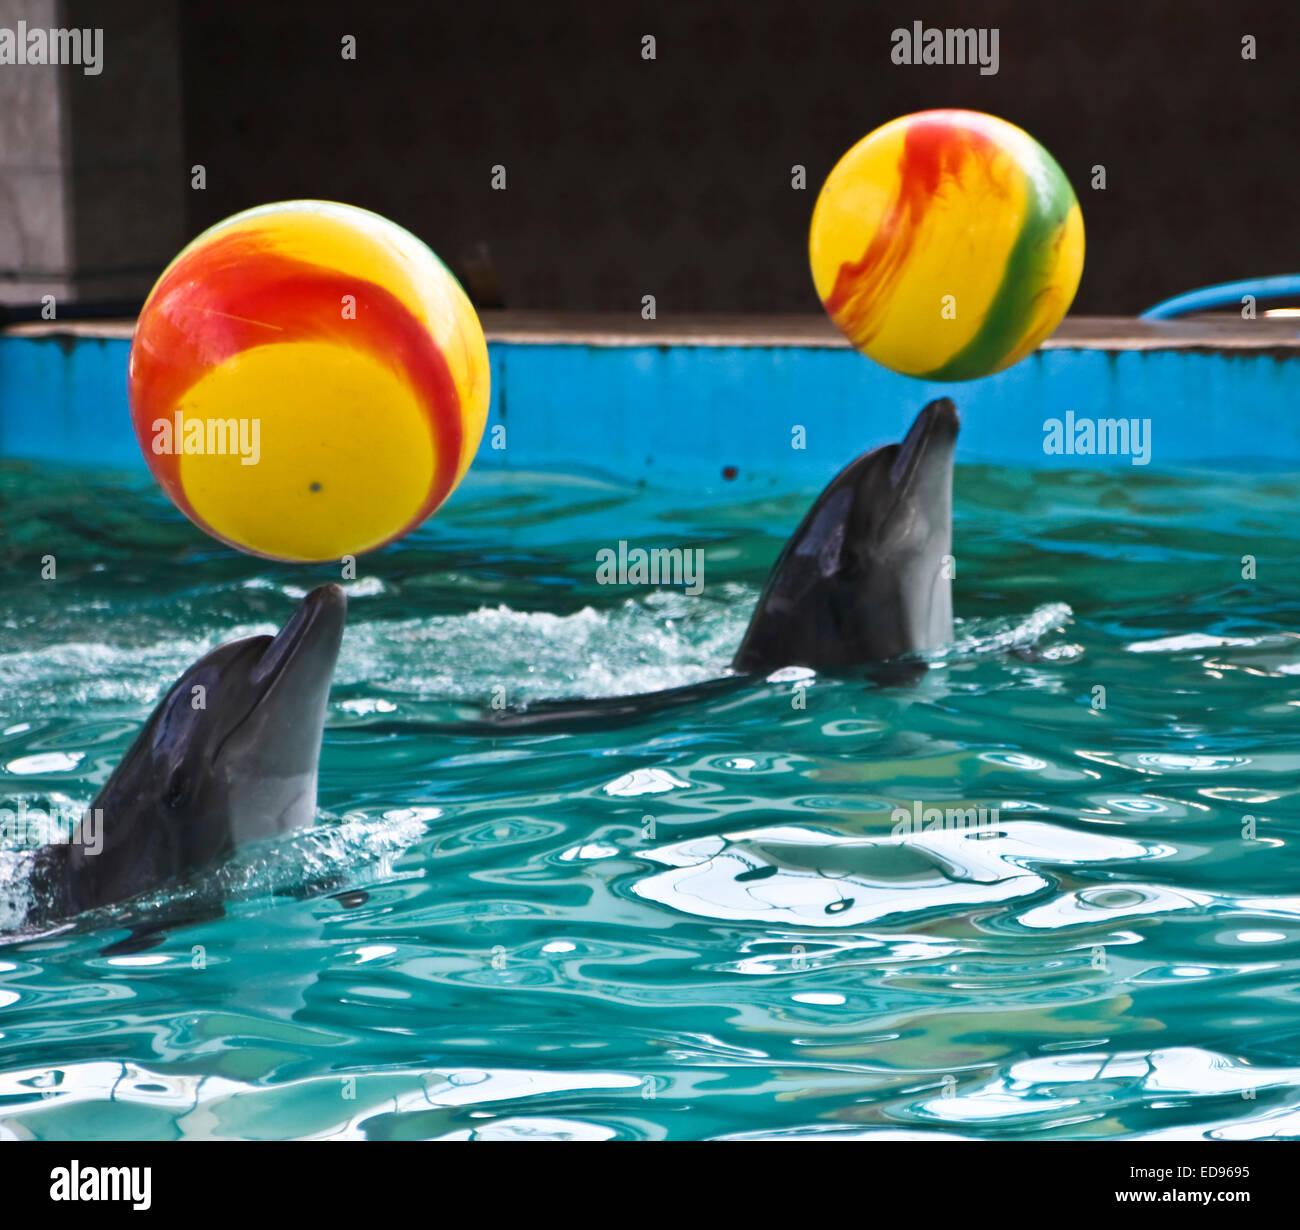 Two delphins with yellow balls. - Stock Image